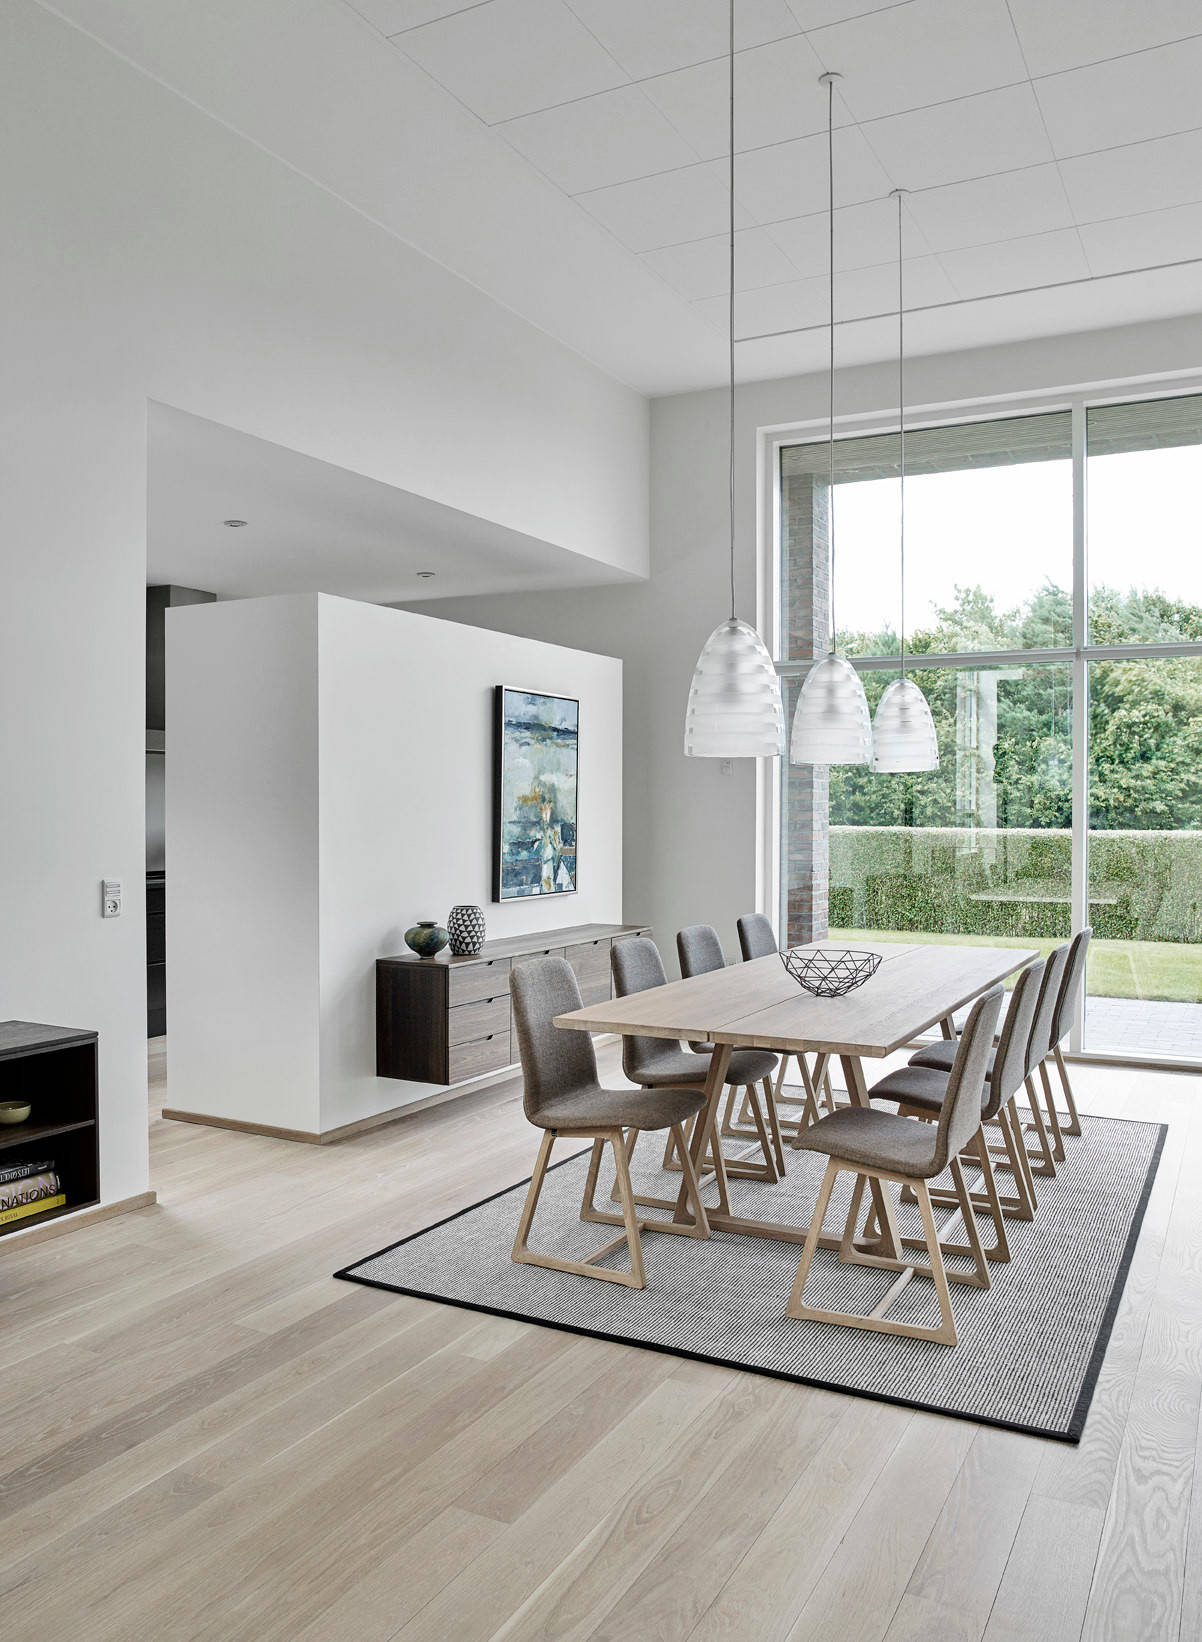 75 Beautiful Modern Dining Room Pictures Ideas December 2020 Houzz